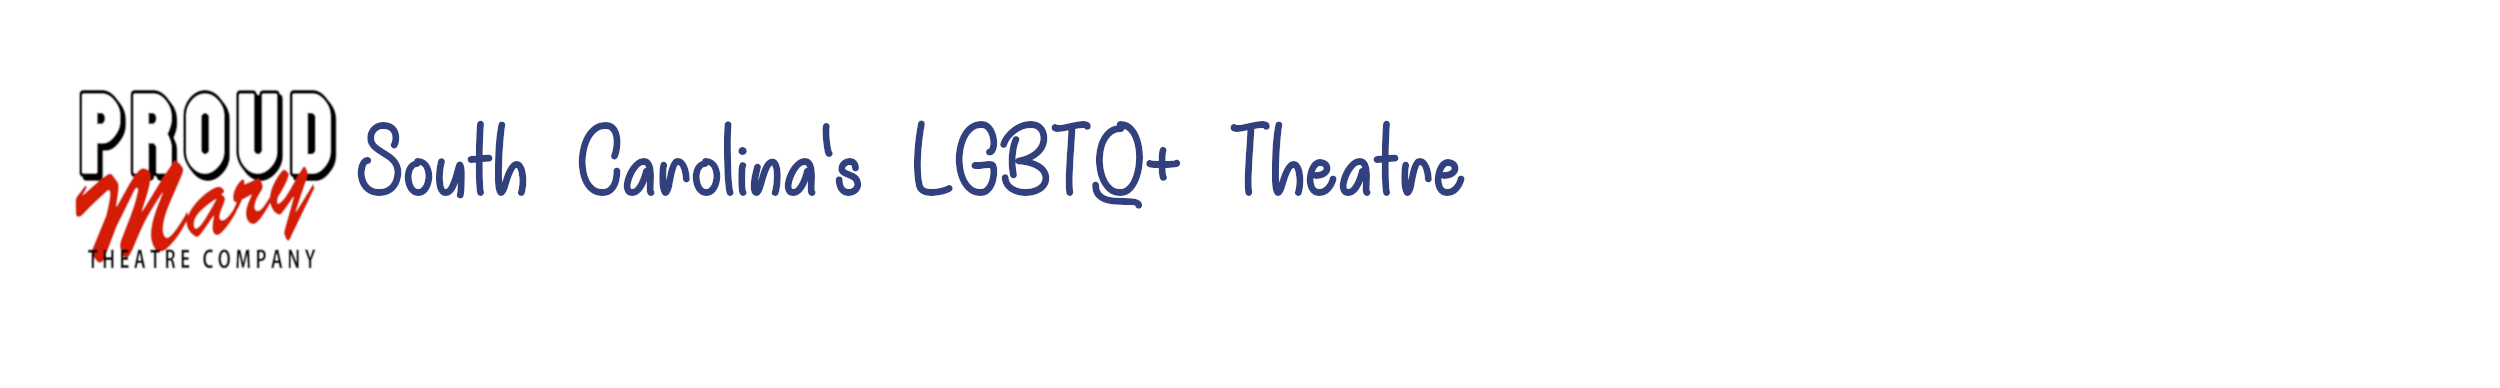 South Carolina's LGBTQ+ Theatre